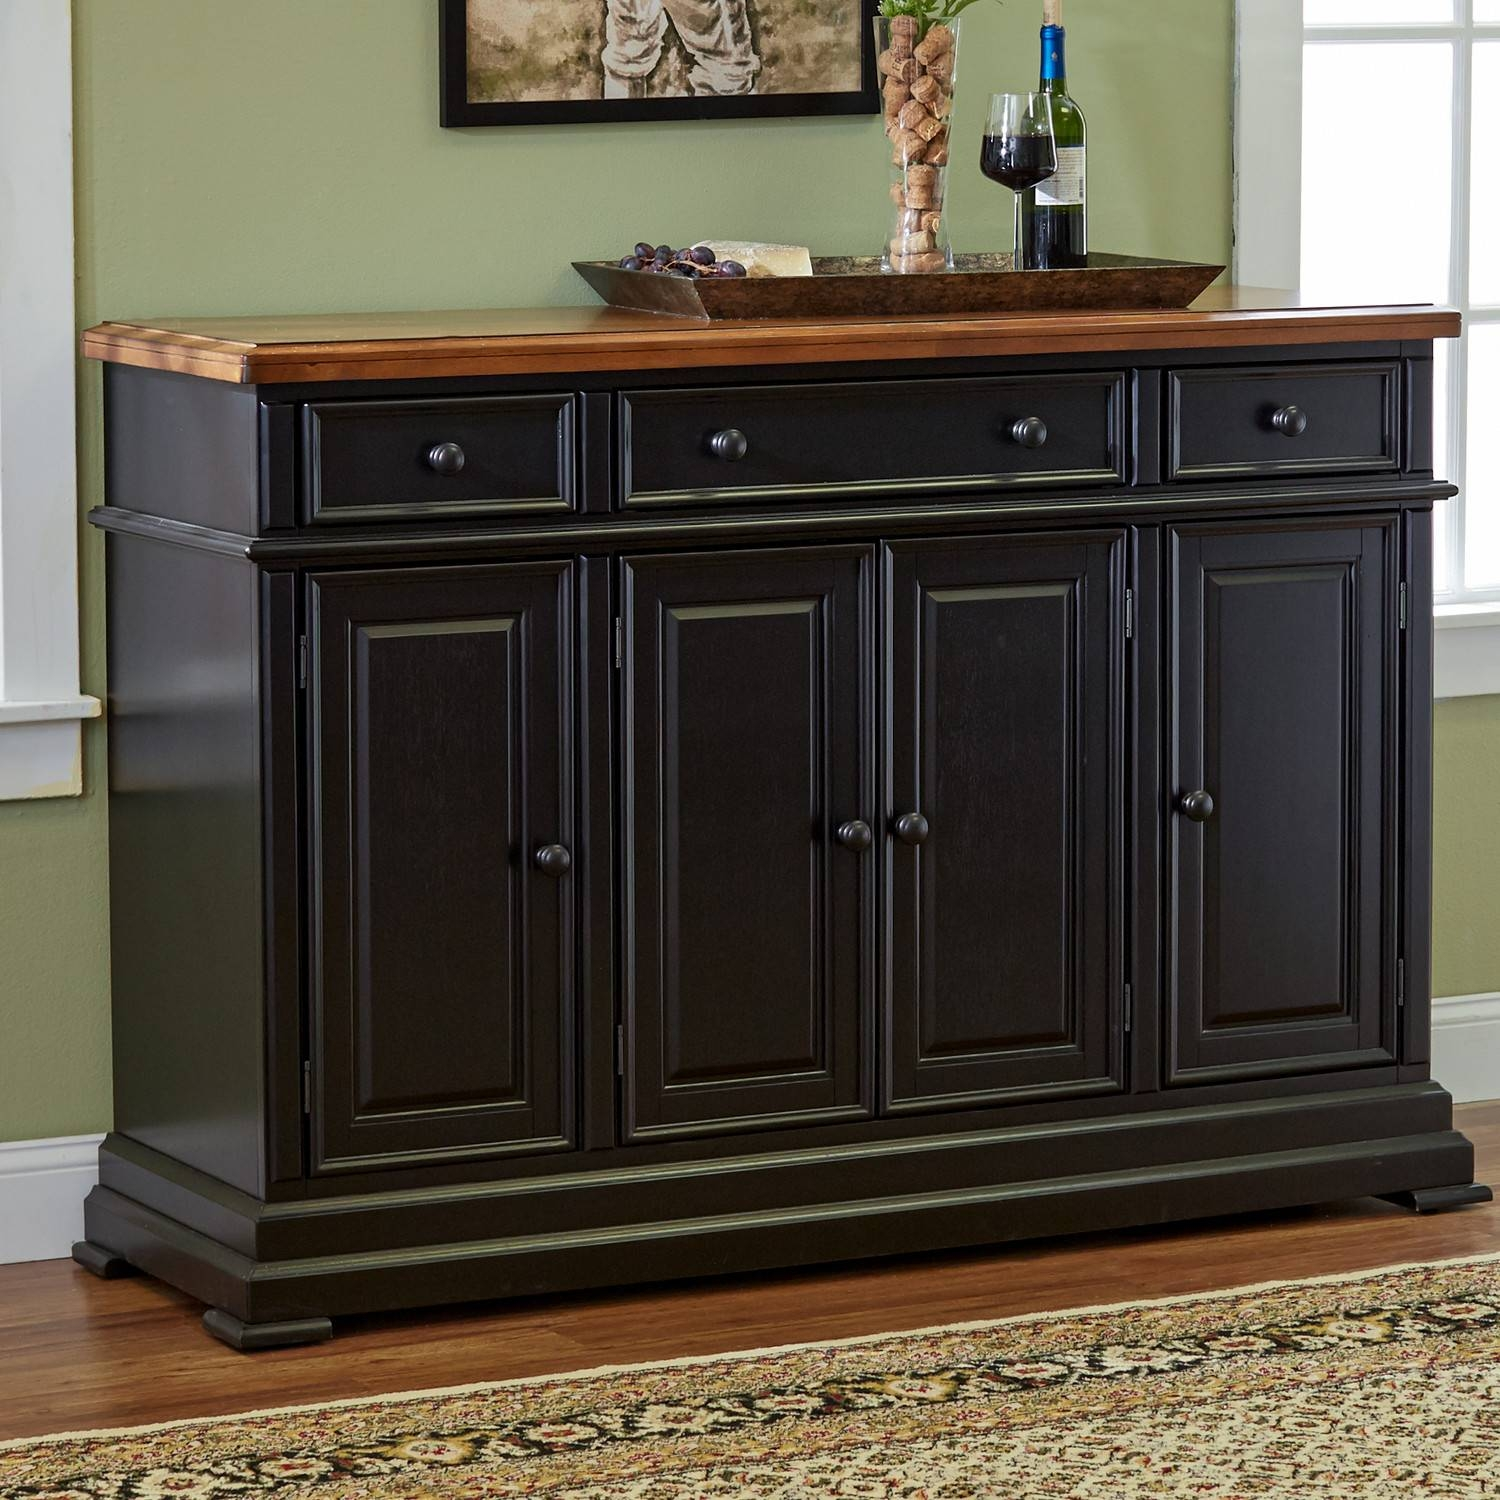 Furniture: Dark Wood Flooring And White Sideboard Buffet And regarding Black Sideboards and Buffets (Image 5 of 15)